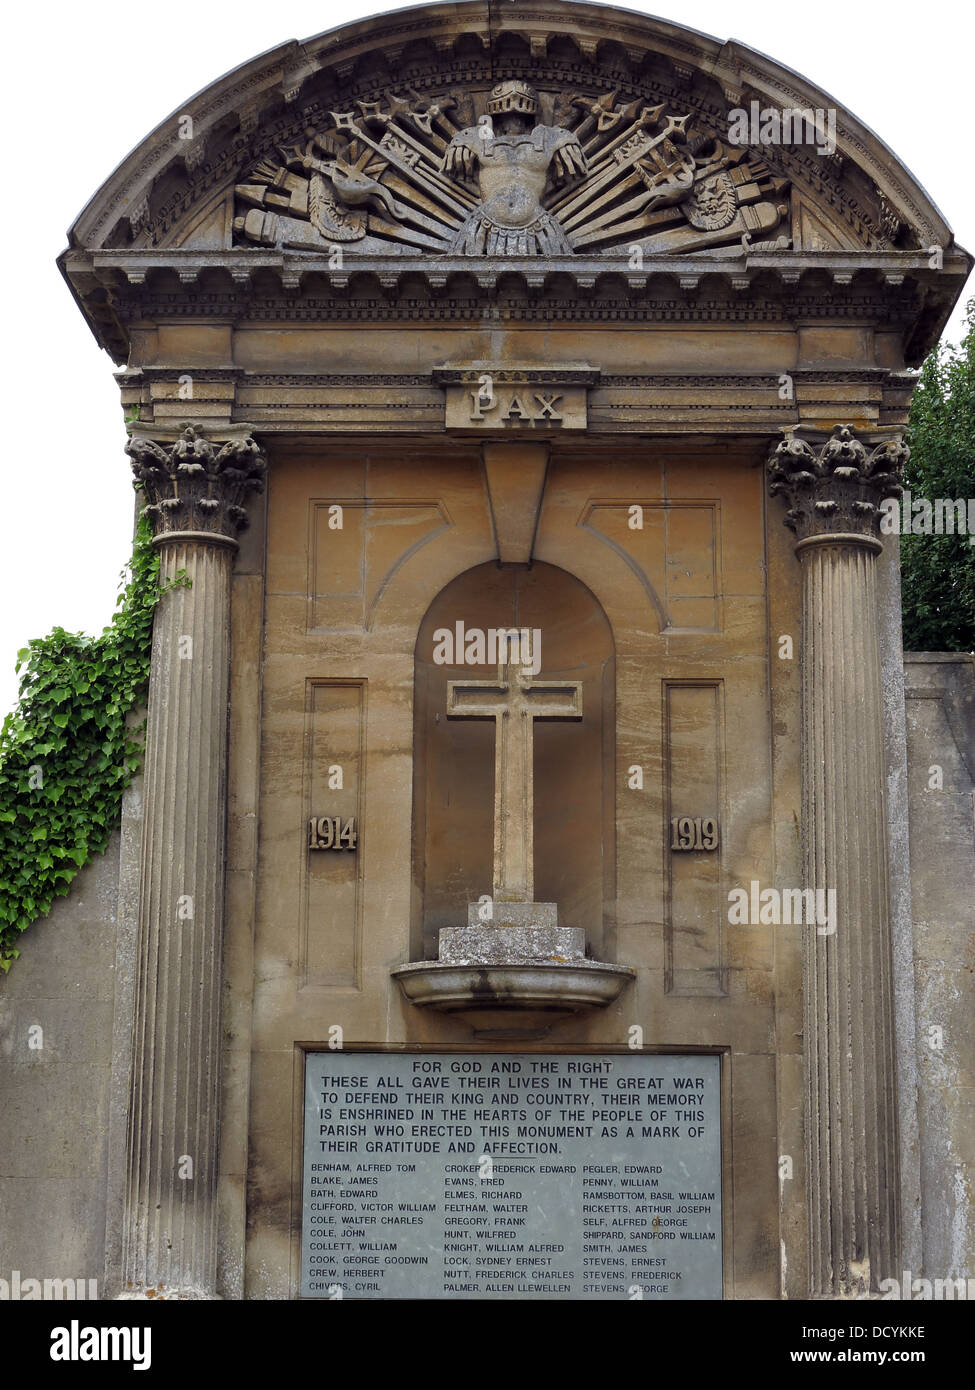 1914-1919 Great War Memorial and cross, Lacock Abbey,Lacock,Wiltshire, England, SN15 Stock Photo